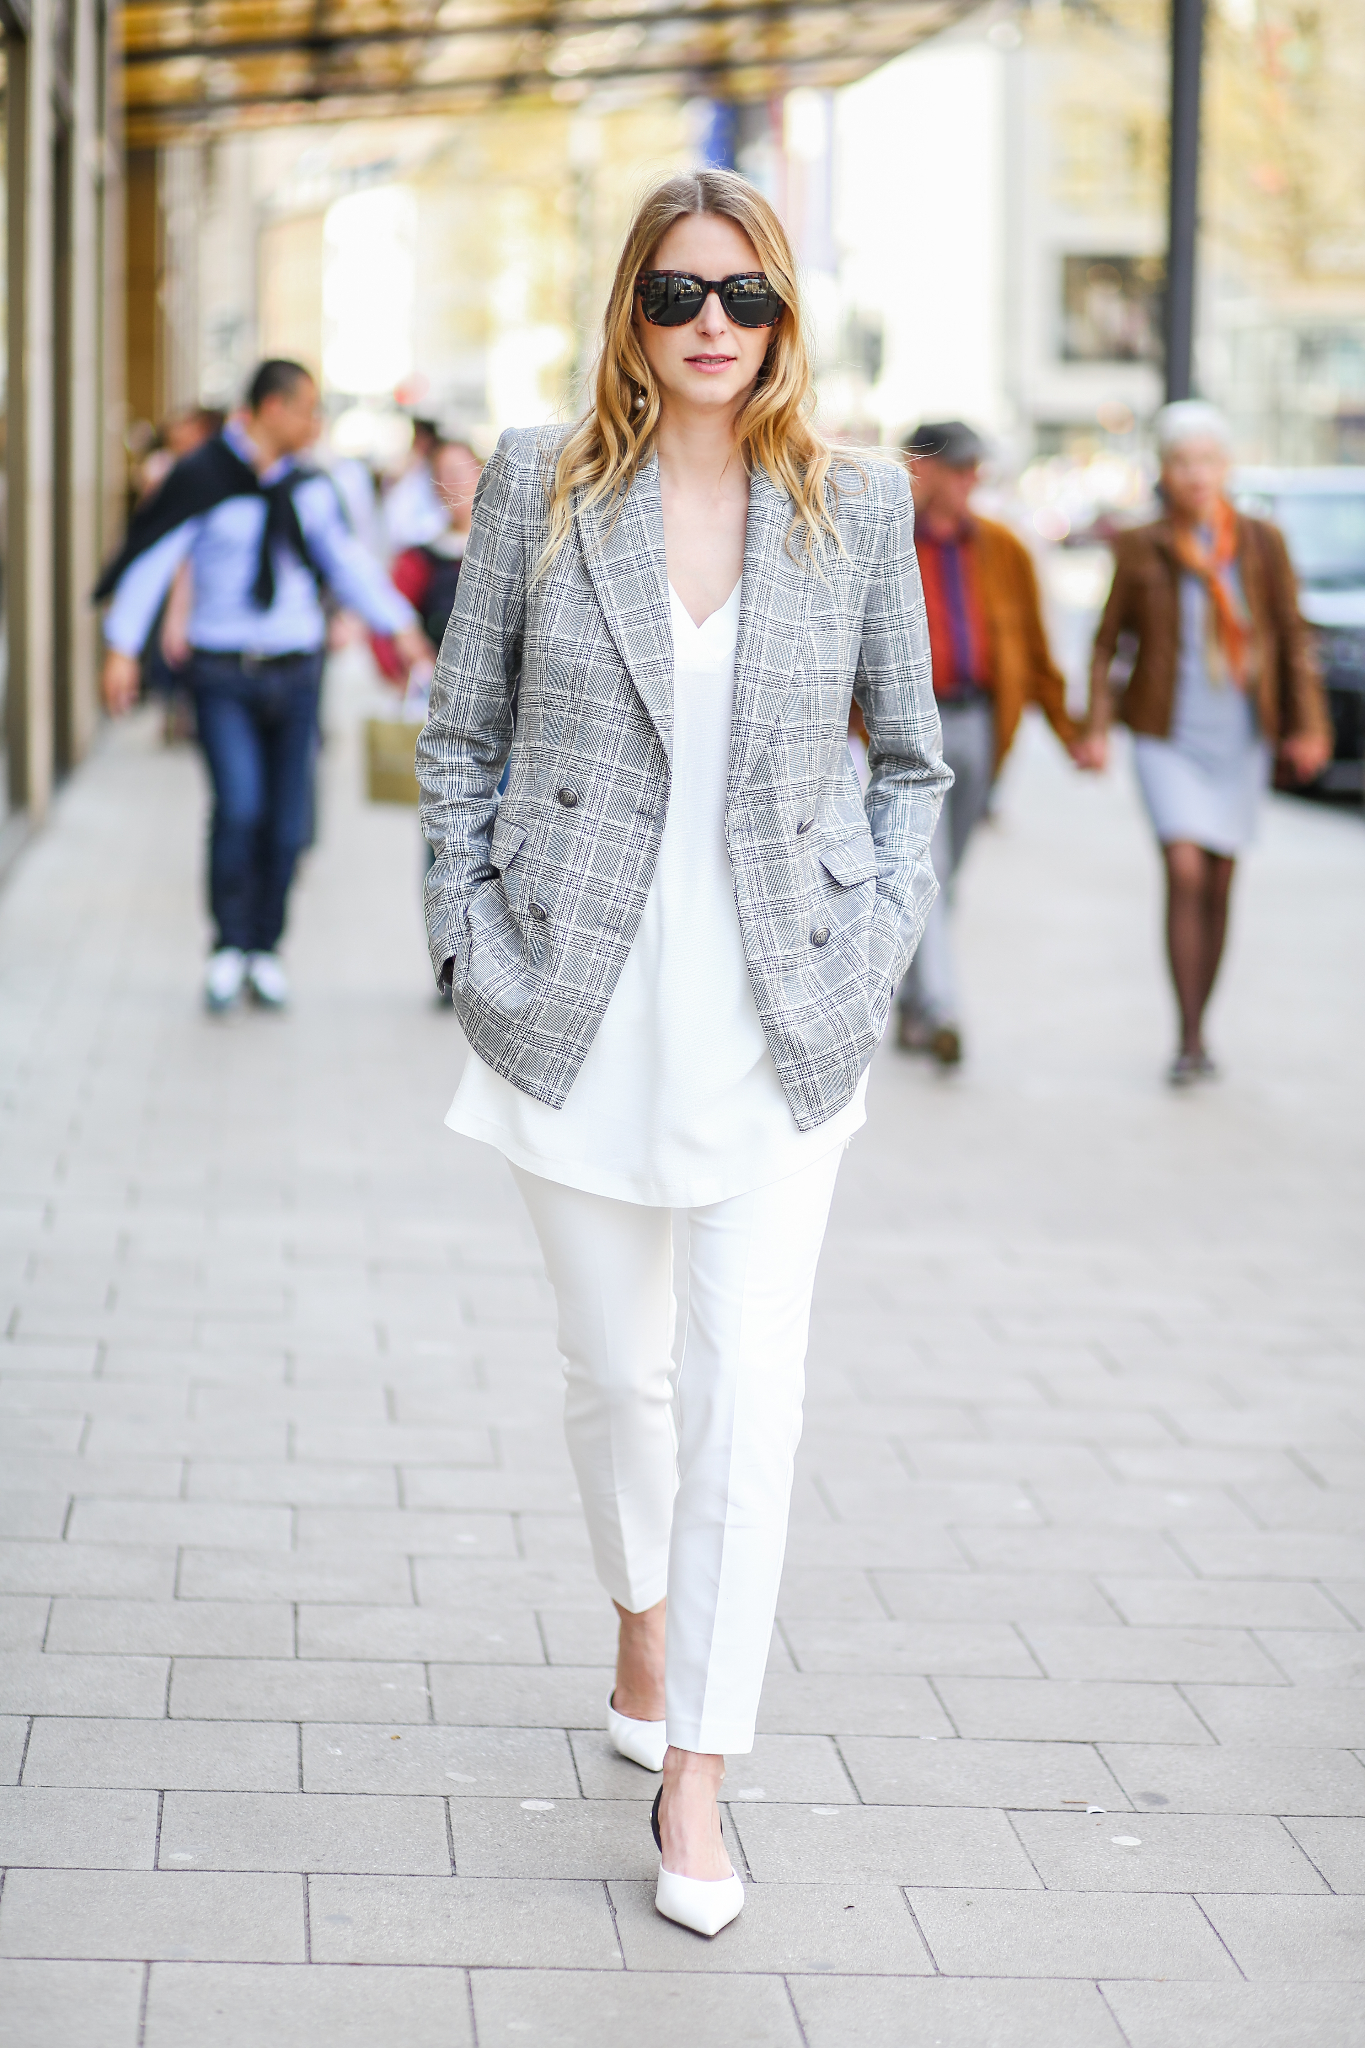 MOD-by-Monique-Fashion-Looks-White-and-checked-9